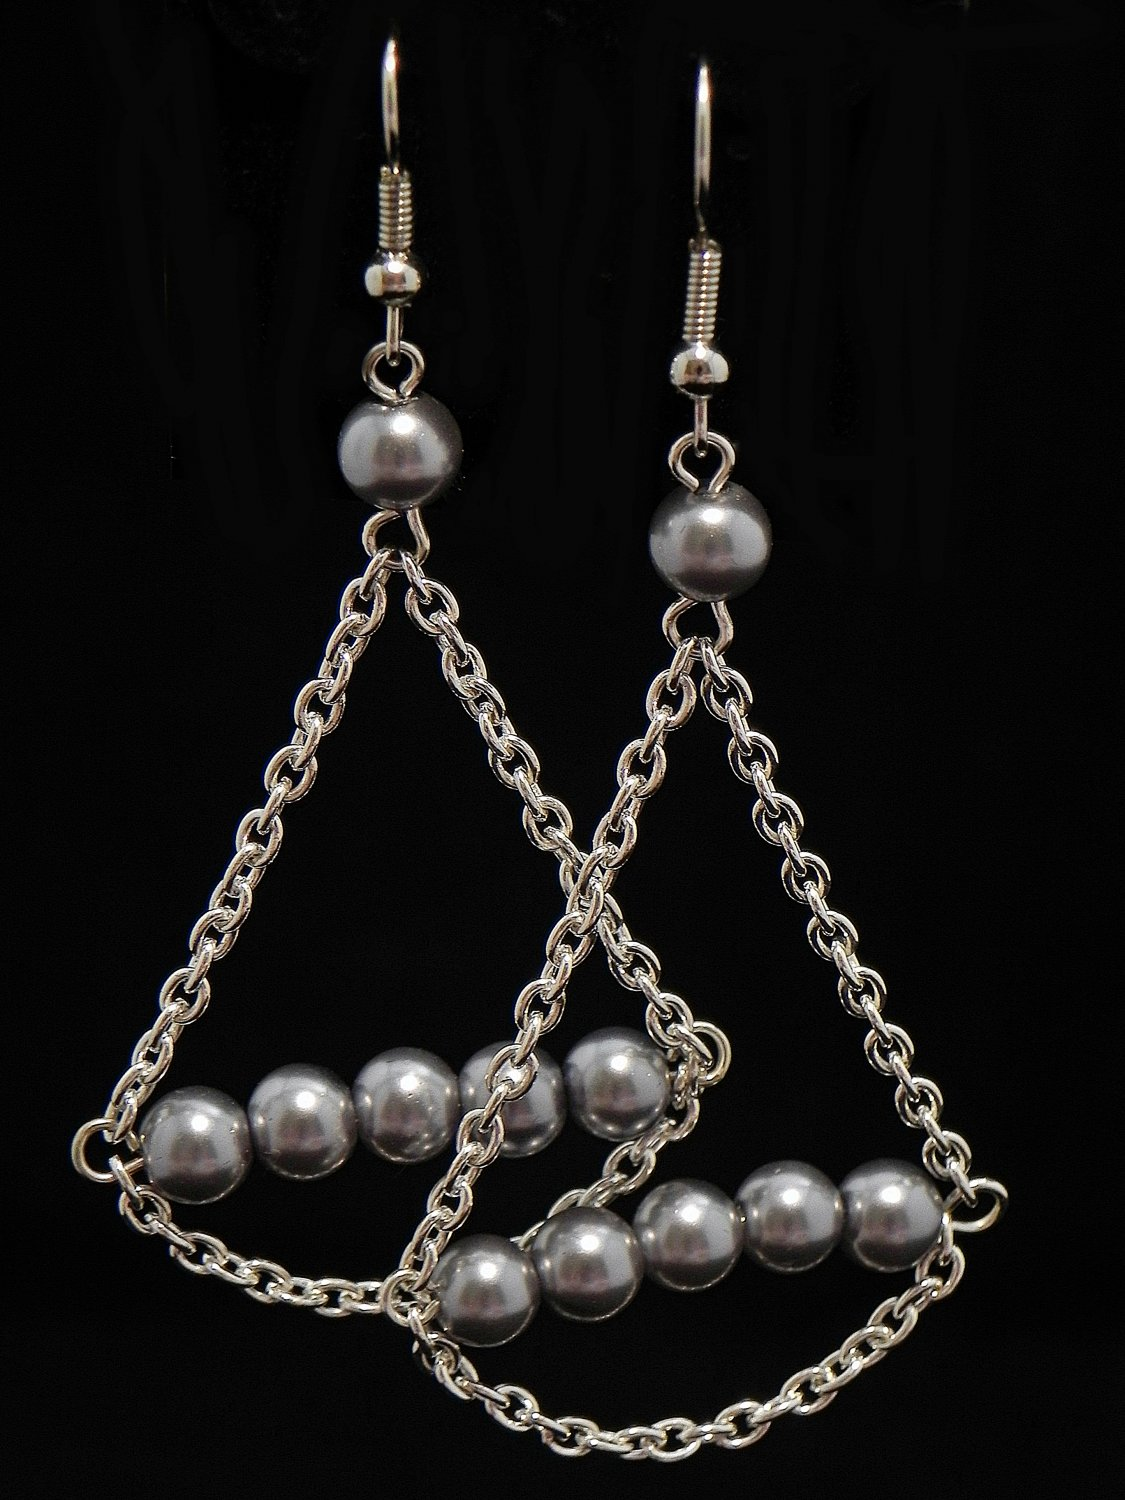 Dangling Pearl and Chain Earrings (Item#: 00303)